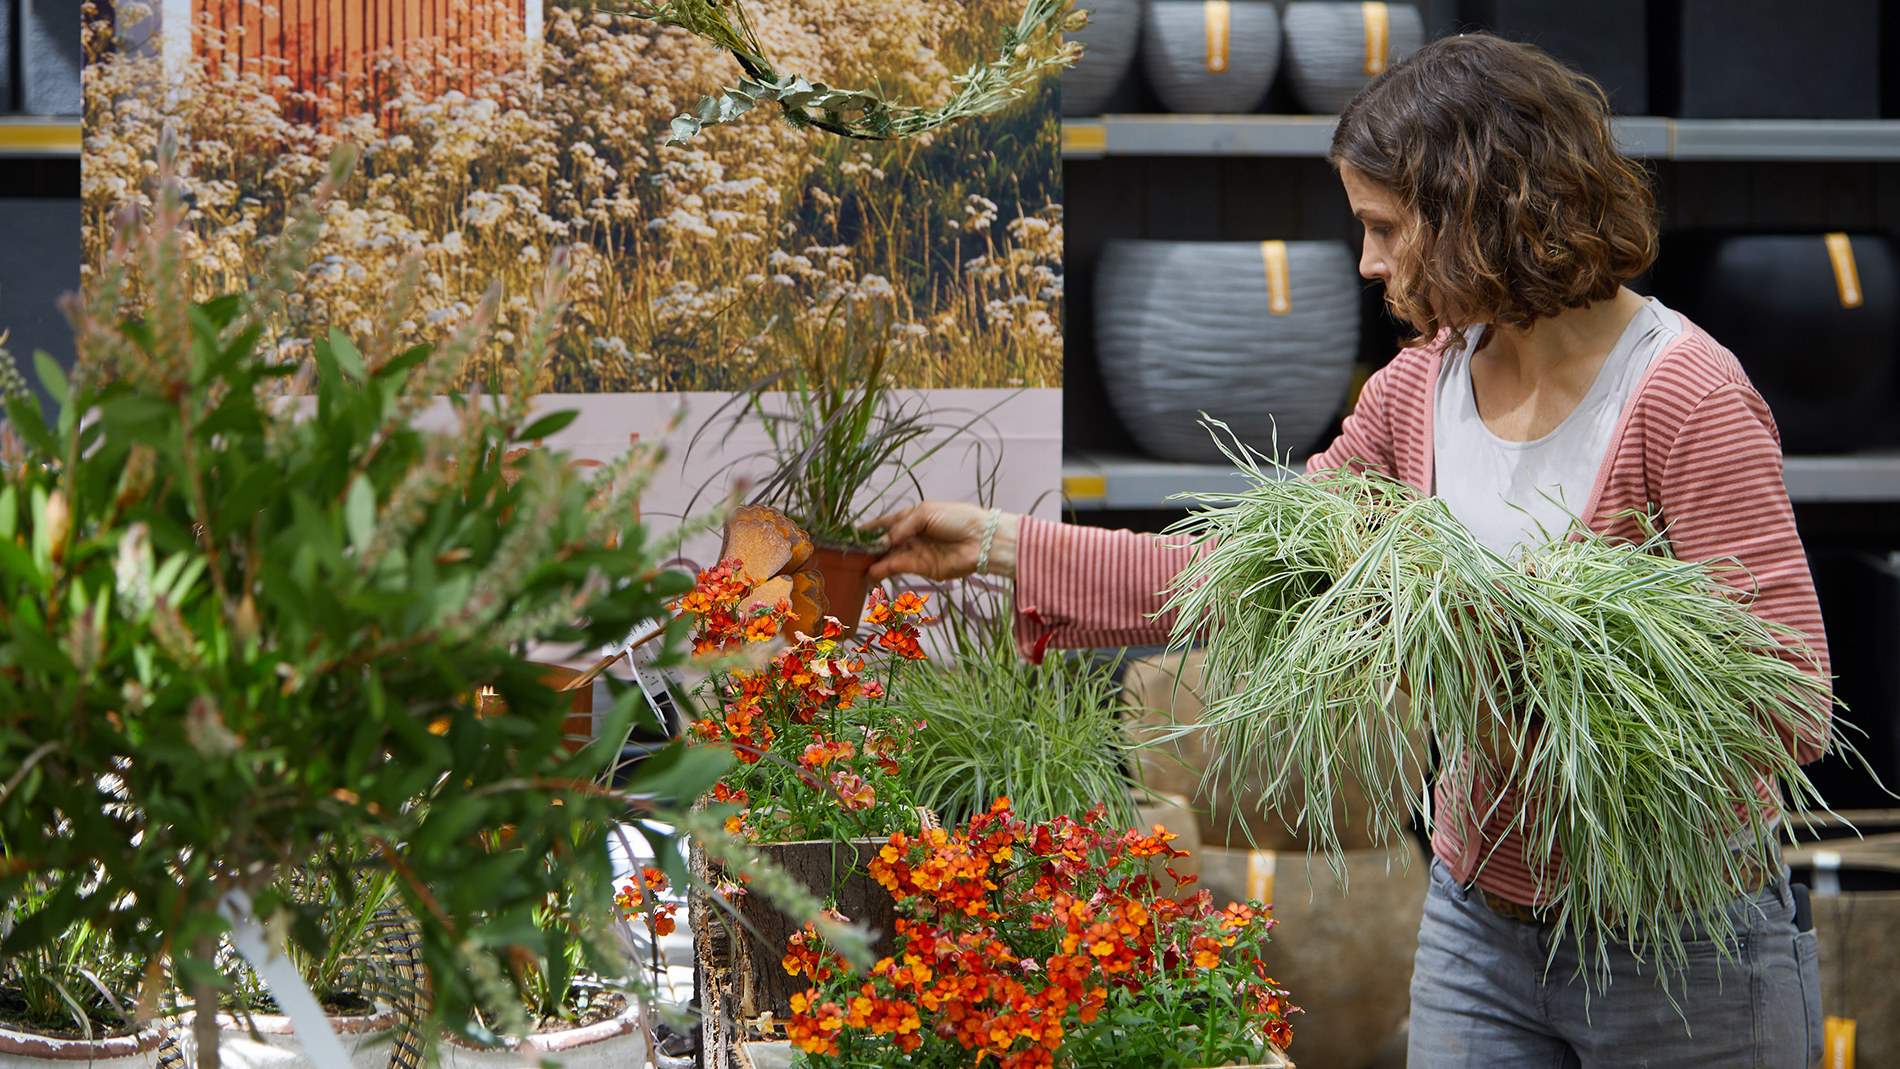 Stefanie Thierfelder places grasses and plants in the shop